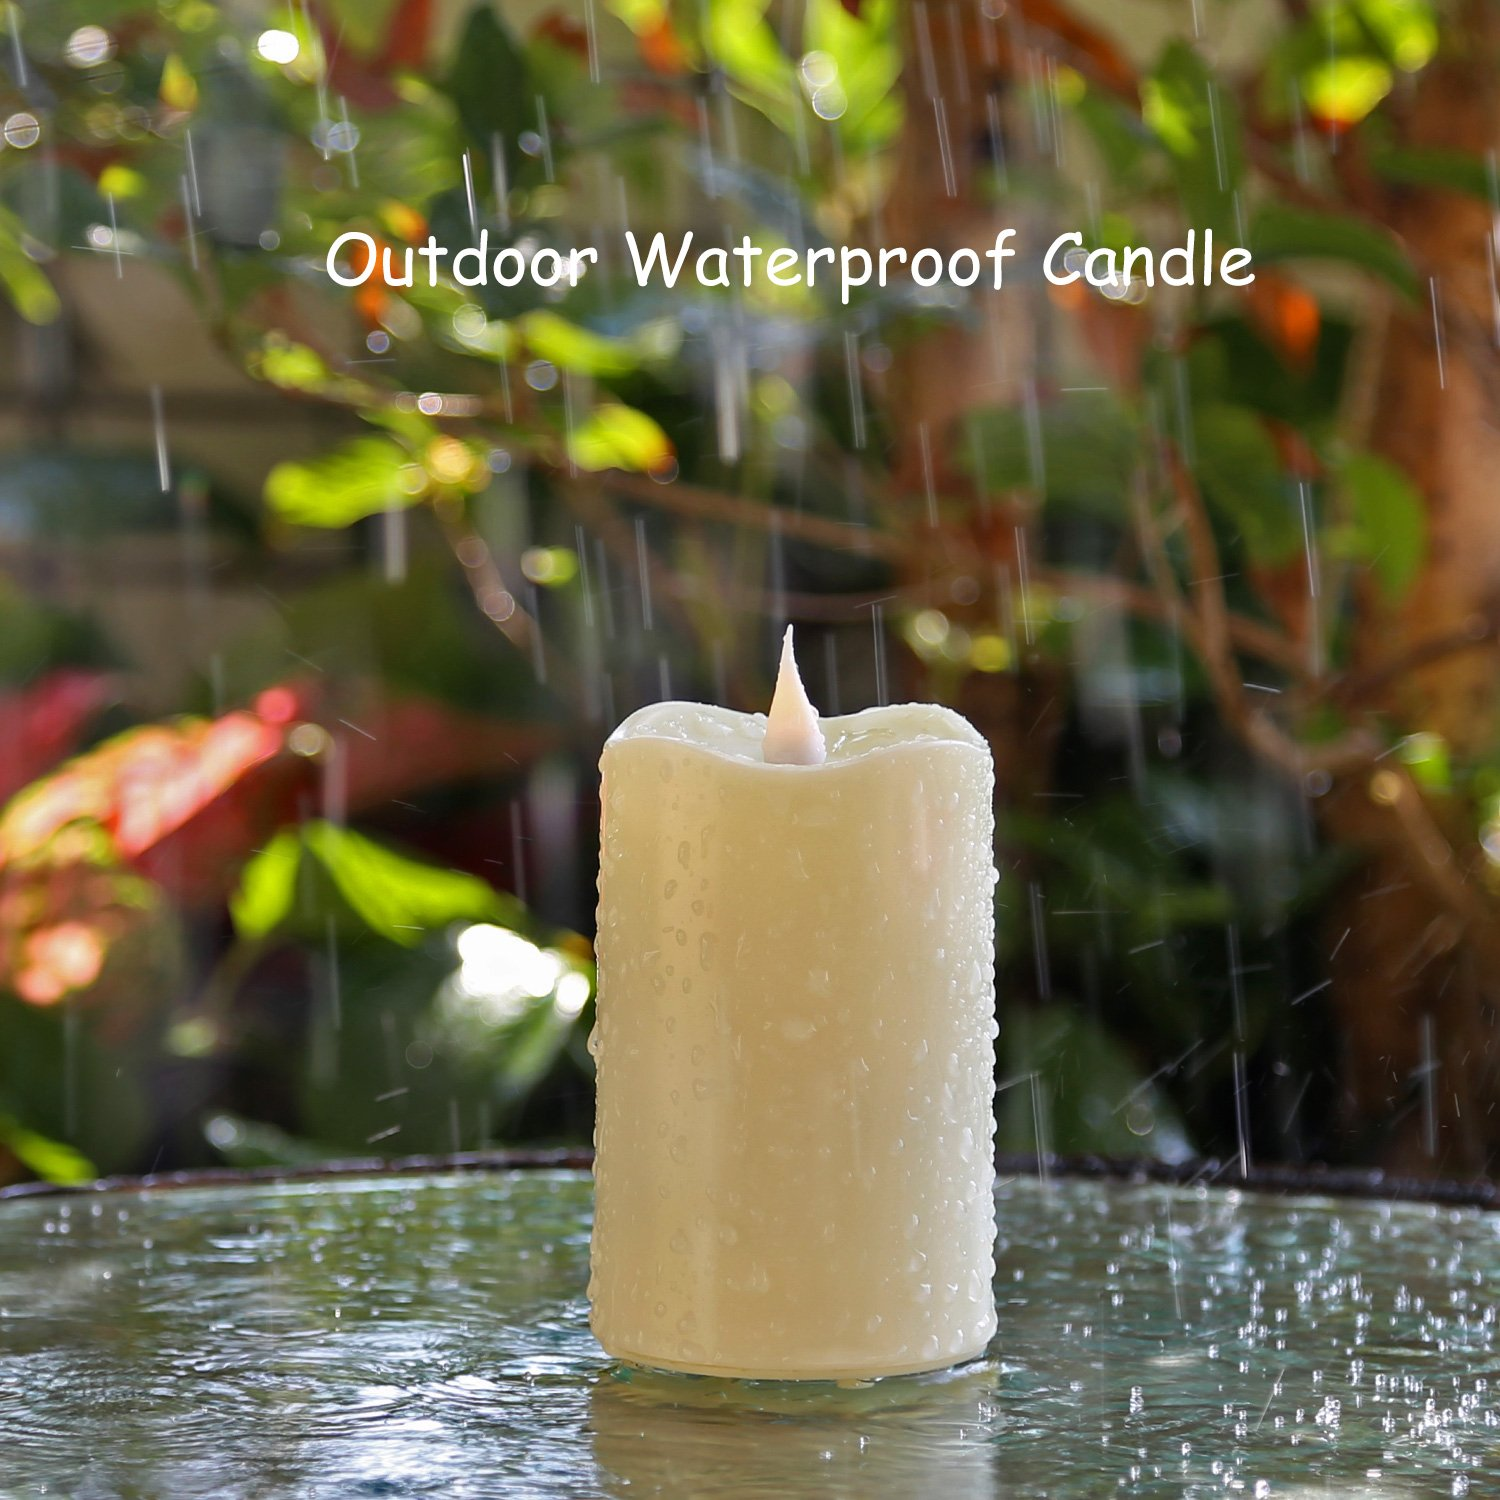 Outdoor Waterproof Moving Flame Led Candle with Timer and Remote Control for Outdoor Decoration, Ivory, 3×4 Inch